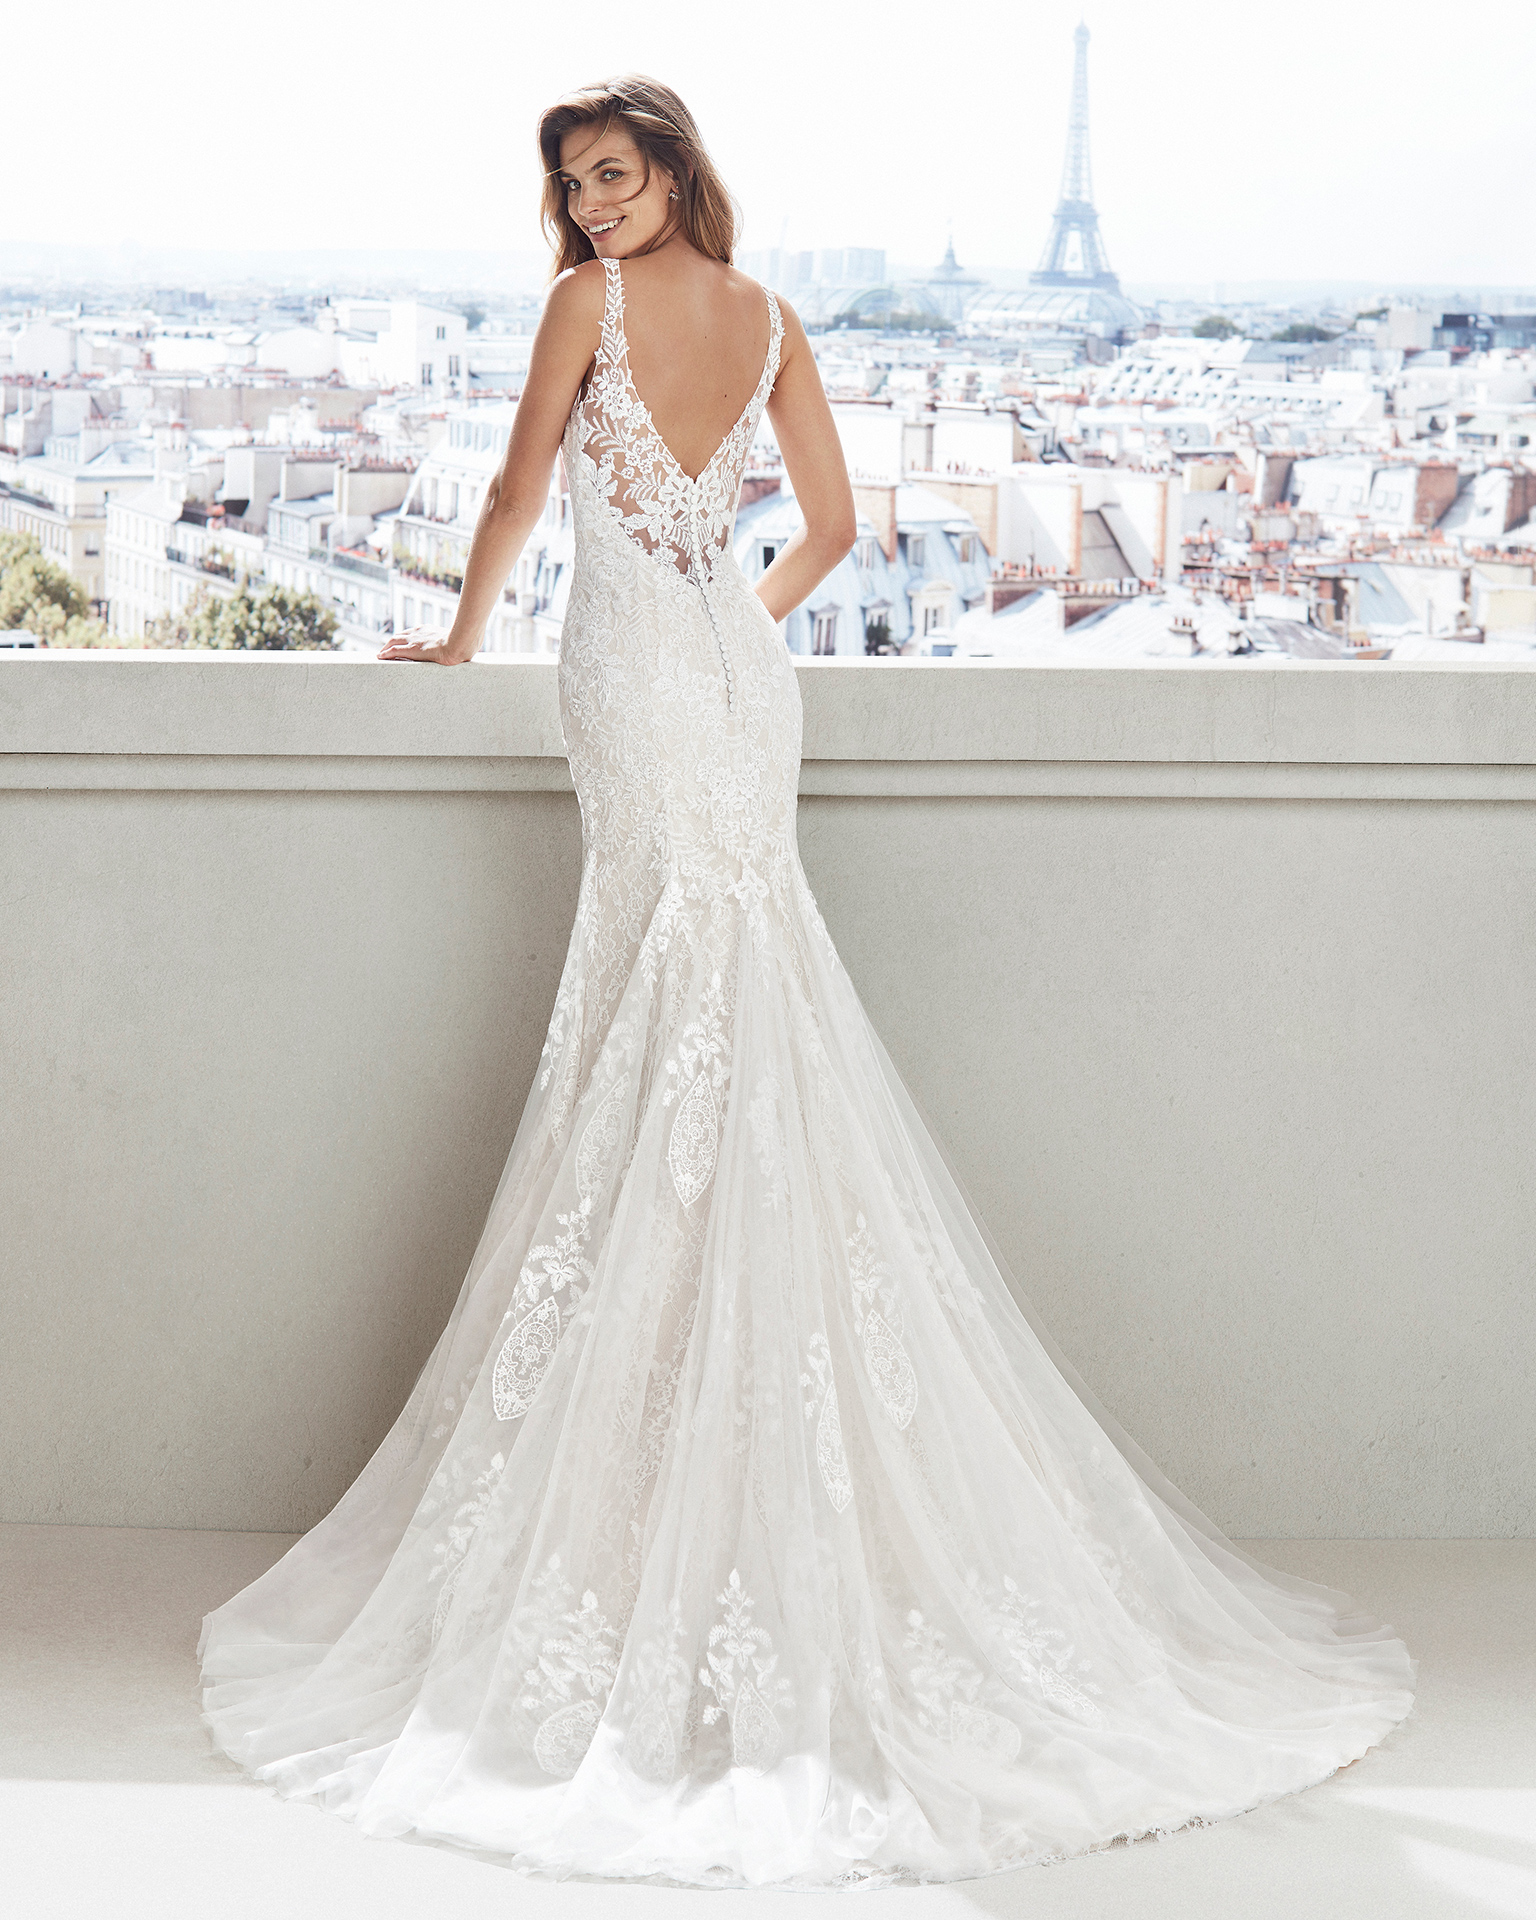 Mermaid-style lace wedding dress. V-neckline and appliquéd skirt. Available in natural and natural/champagne. 2019  Collection.